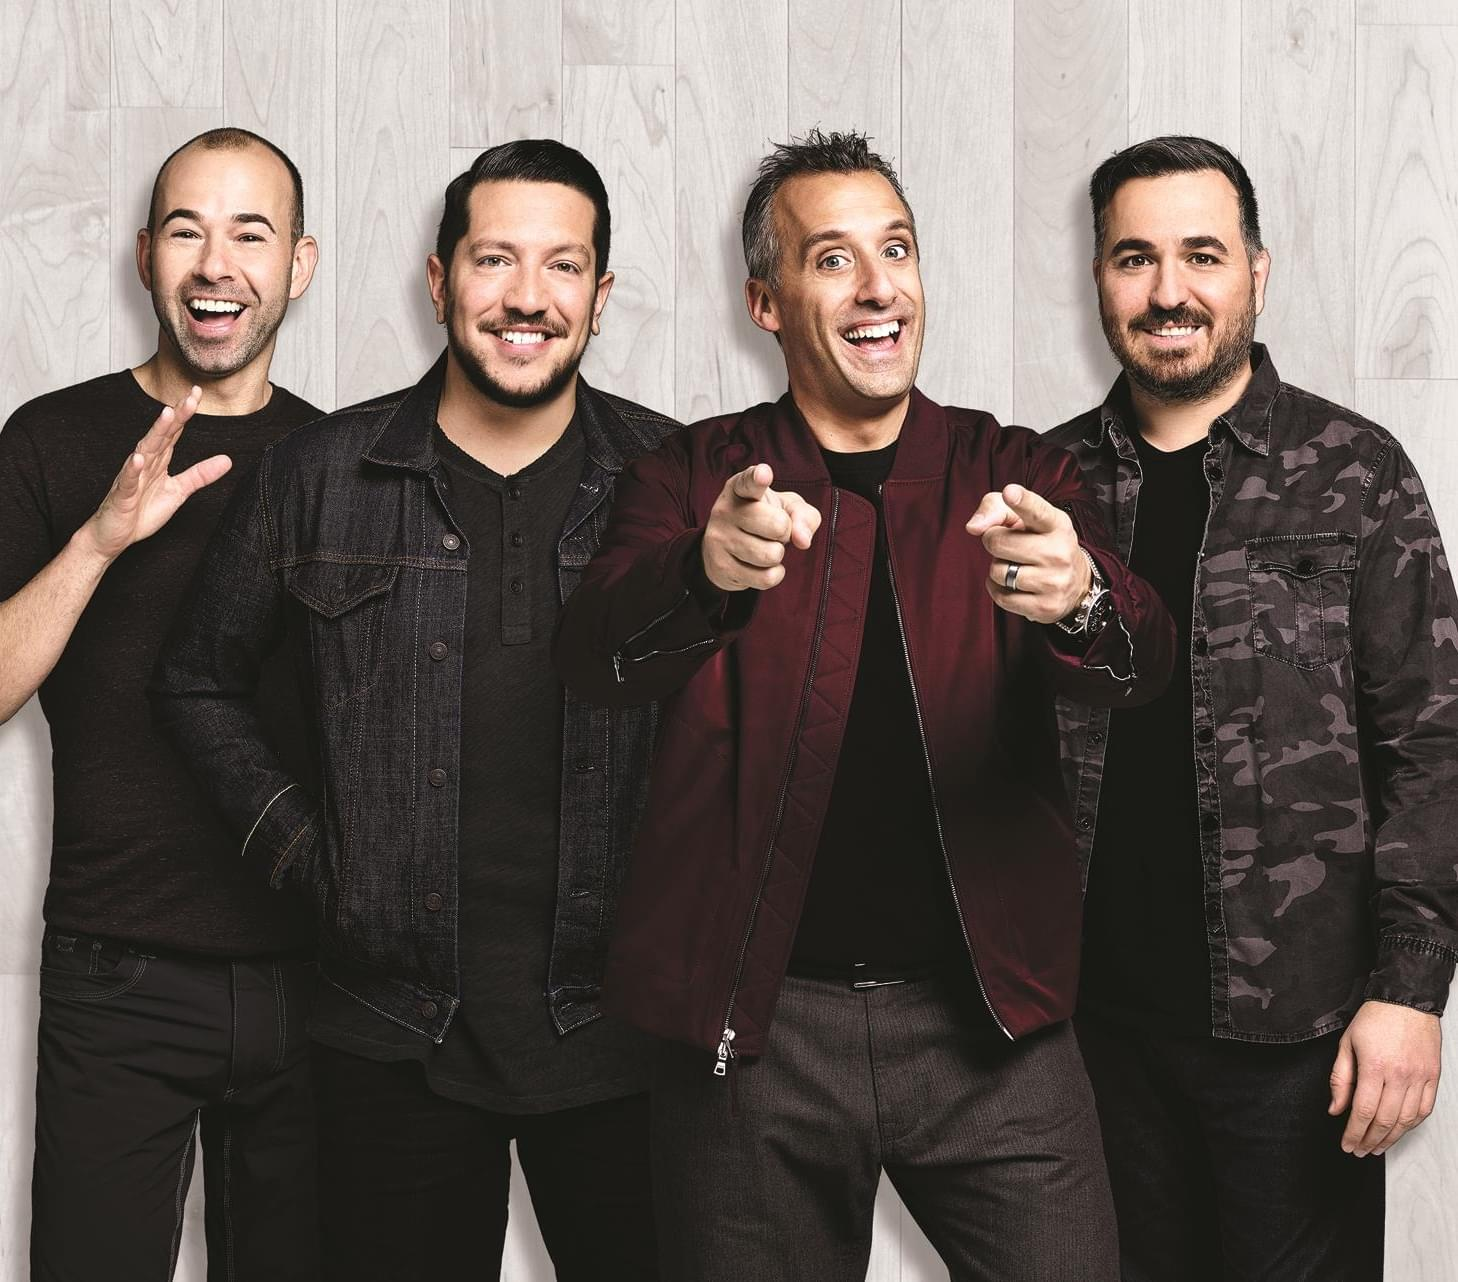 The Impractical Jokers!